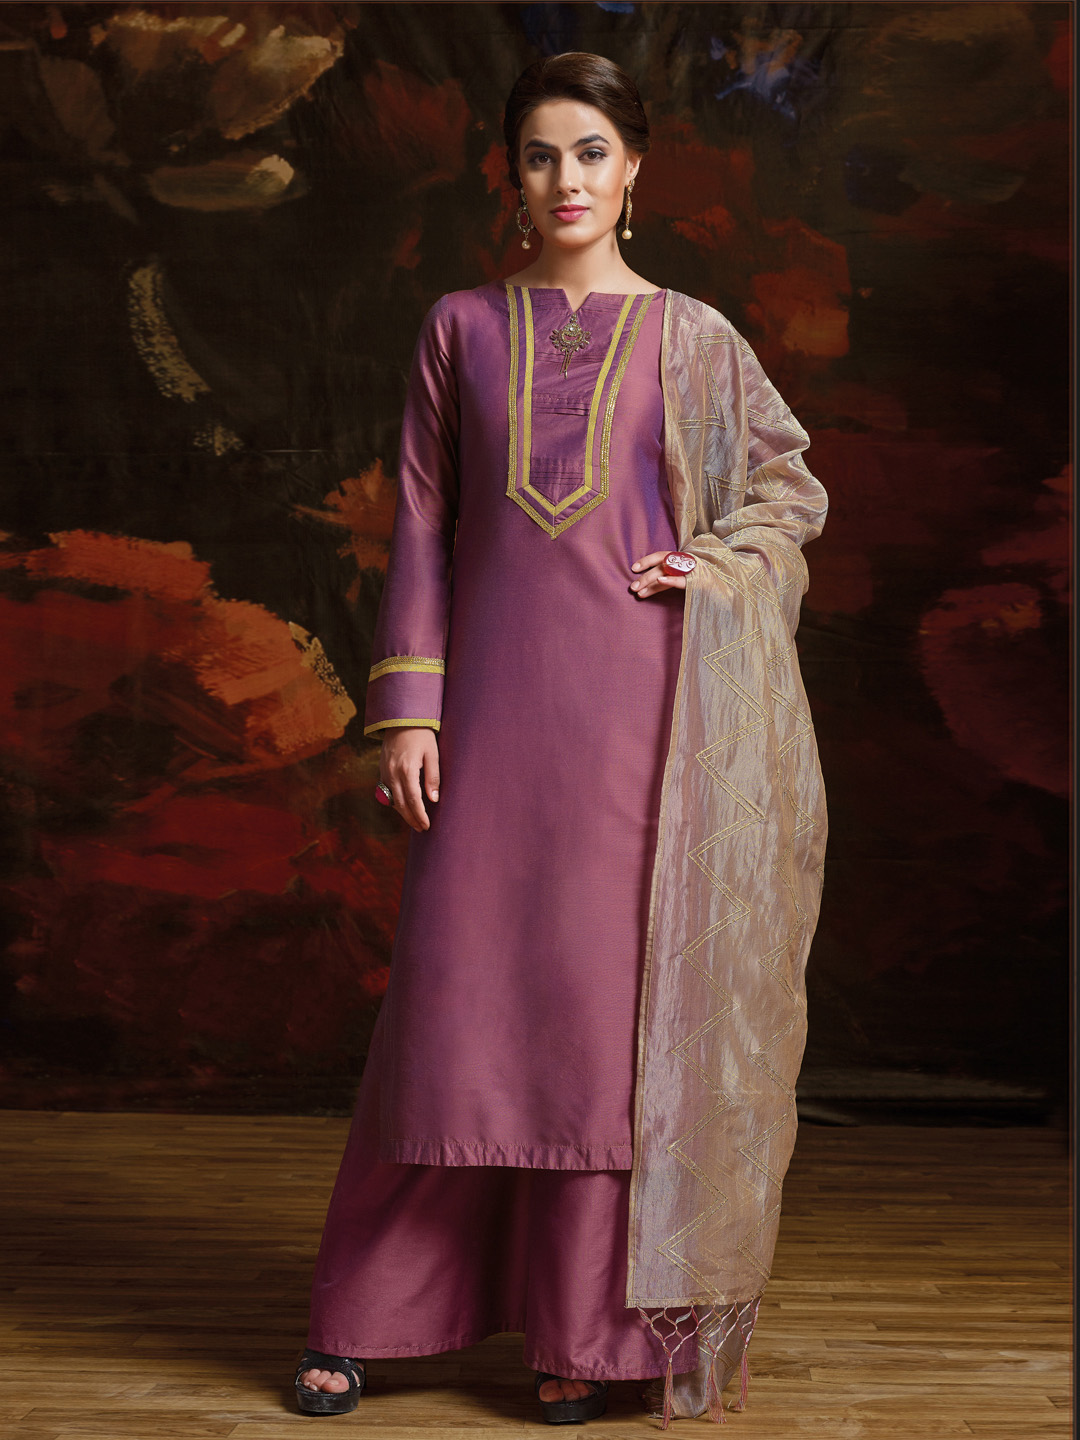 89ed458245 latest designer palazzo suit, top trends of palazzo suit, latest palazzo  suit, styles